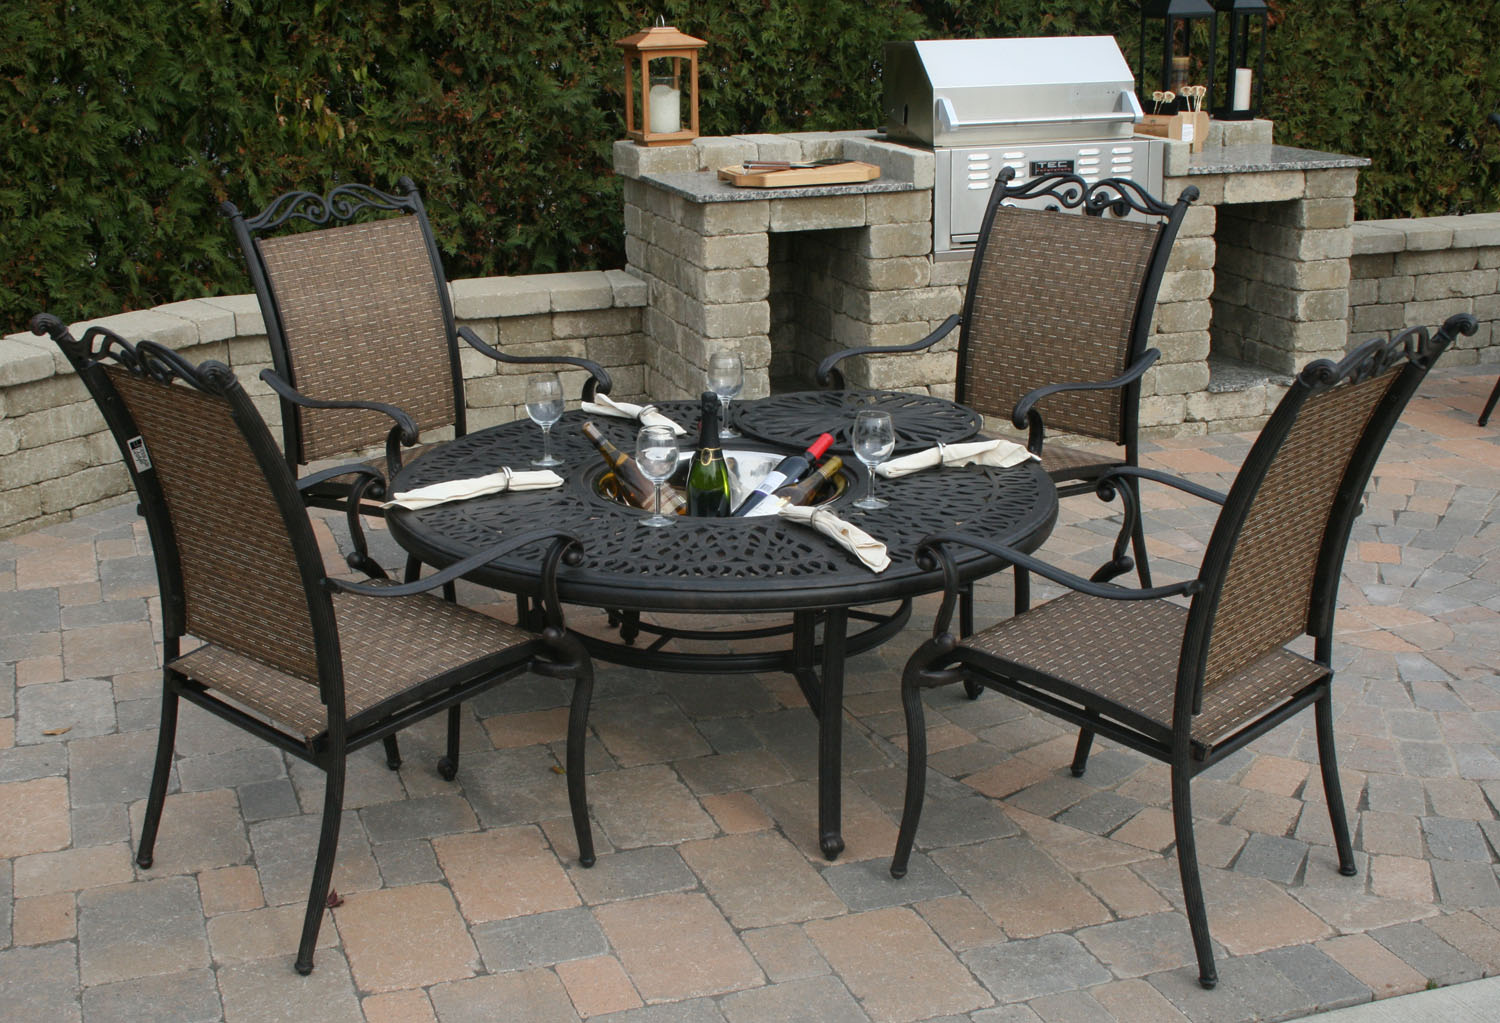 patio set in front of barbecue grill assembled by Got a Hand